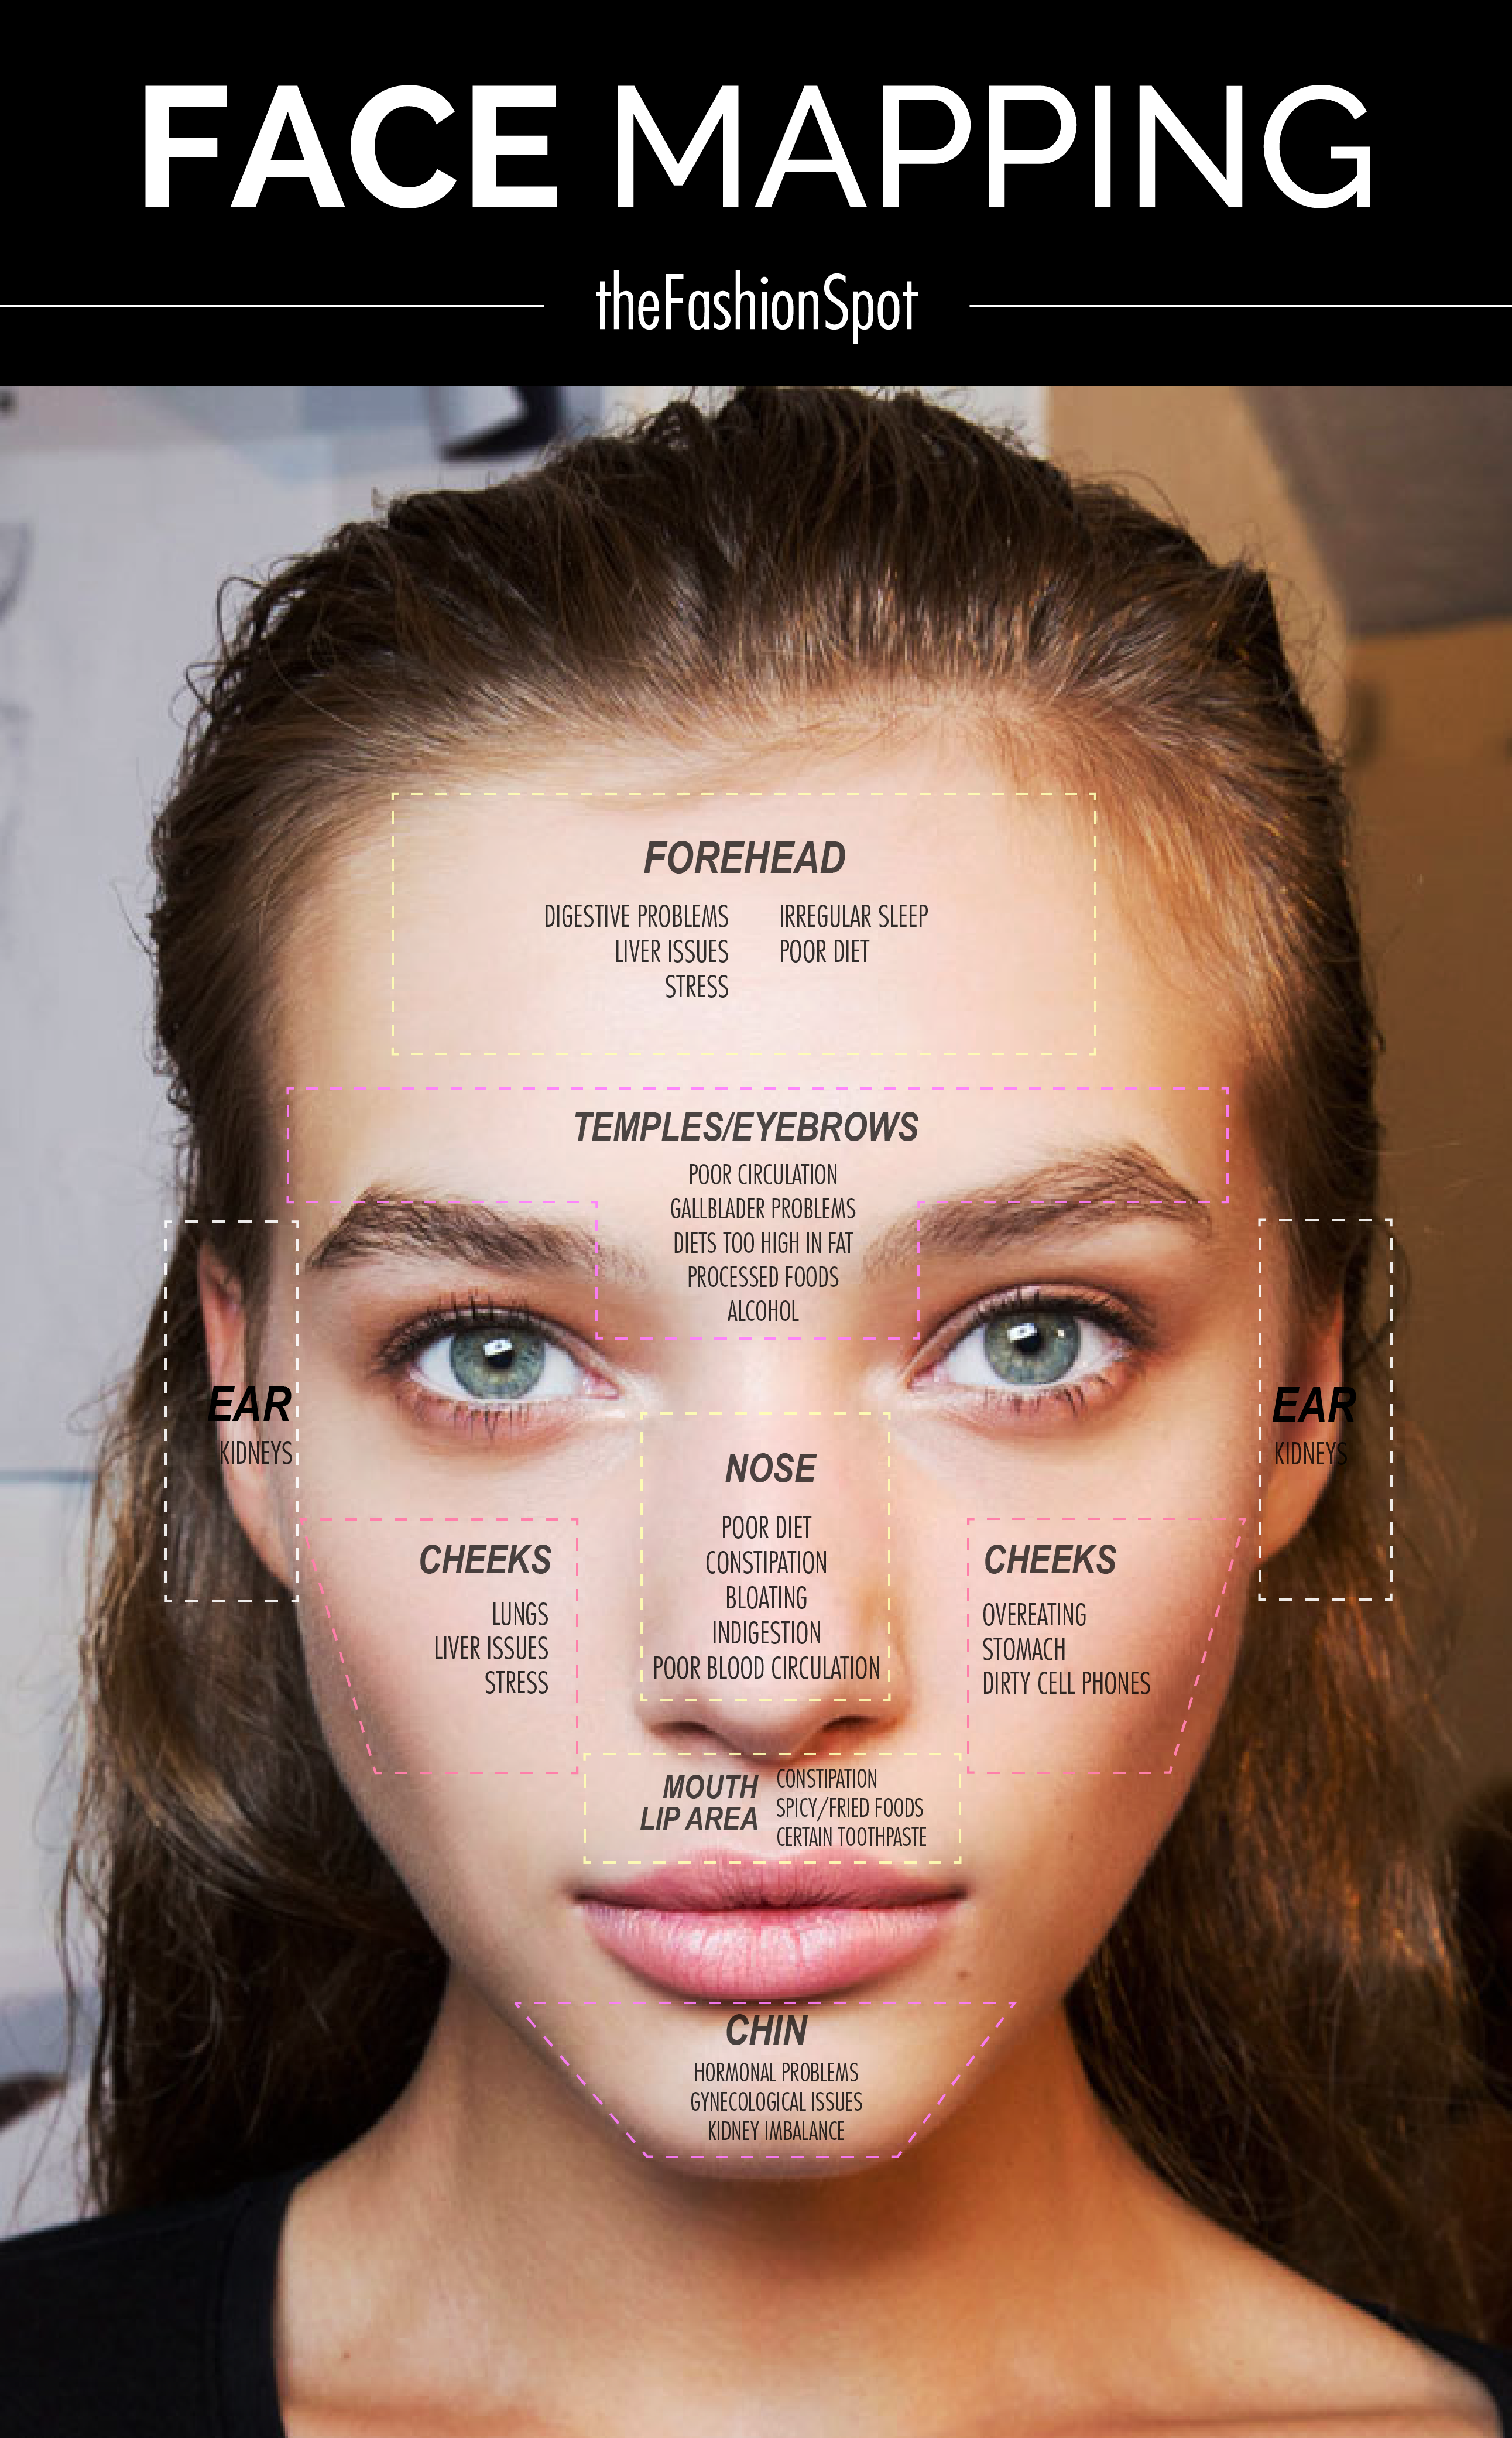 What Causes Acne Diagram 3 Types Of Faults Face Mapping Your Beauty Pinterest Makeup